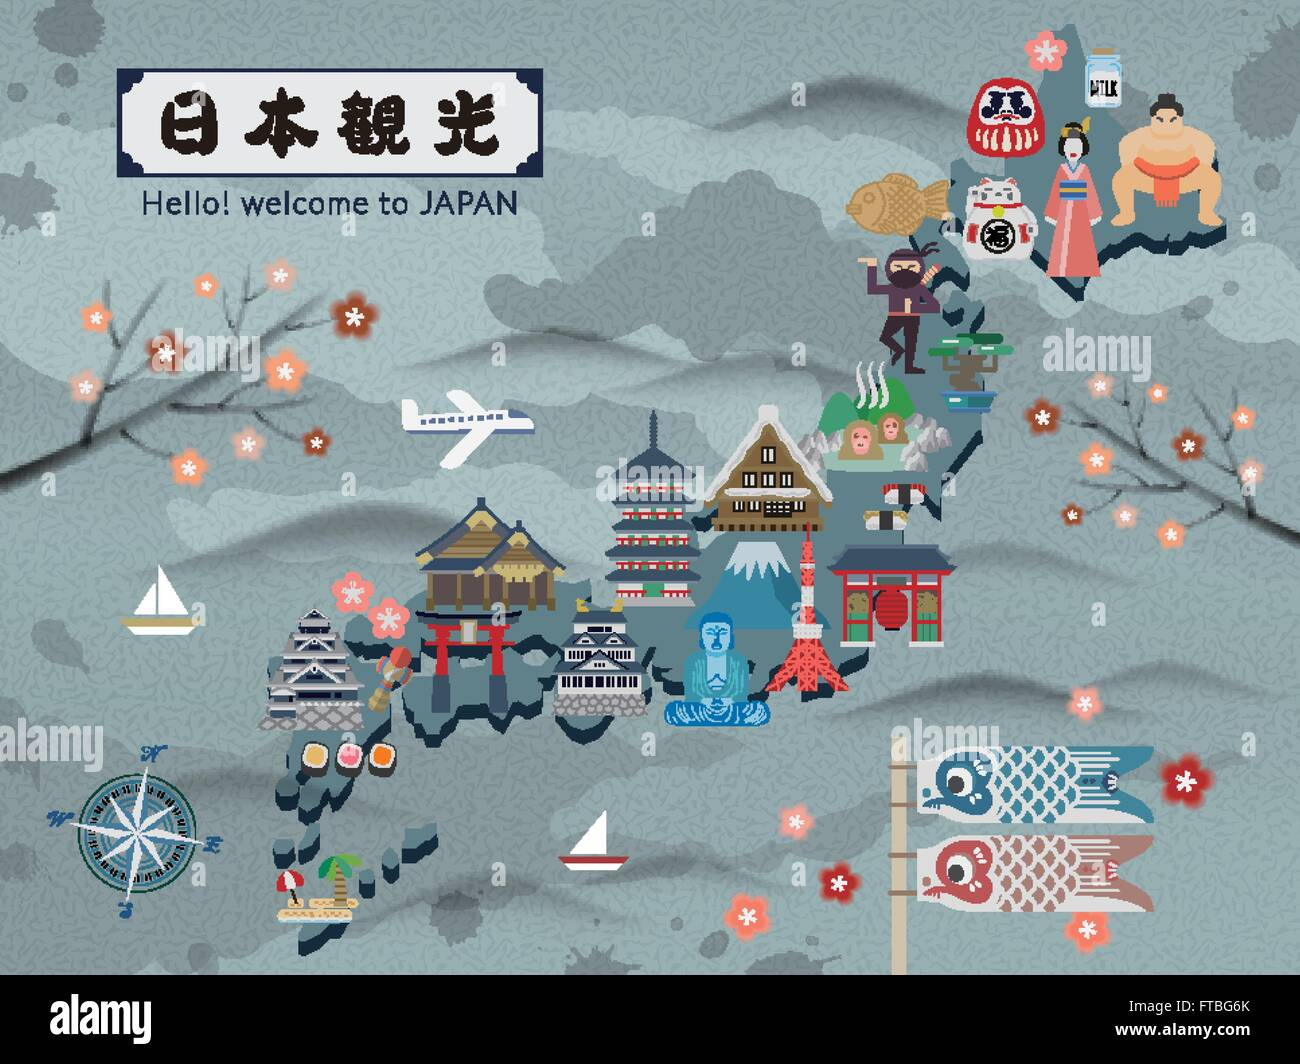 Japan travel map with famous attractions Japan Travel in Japanese